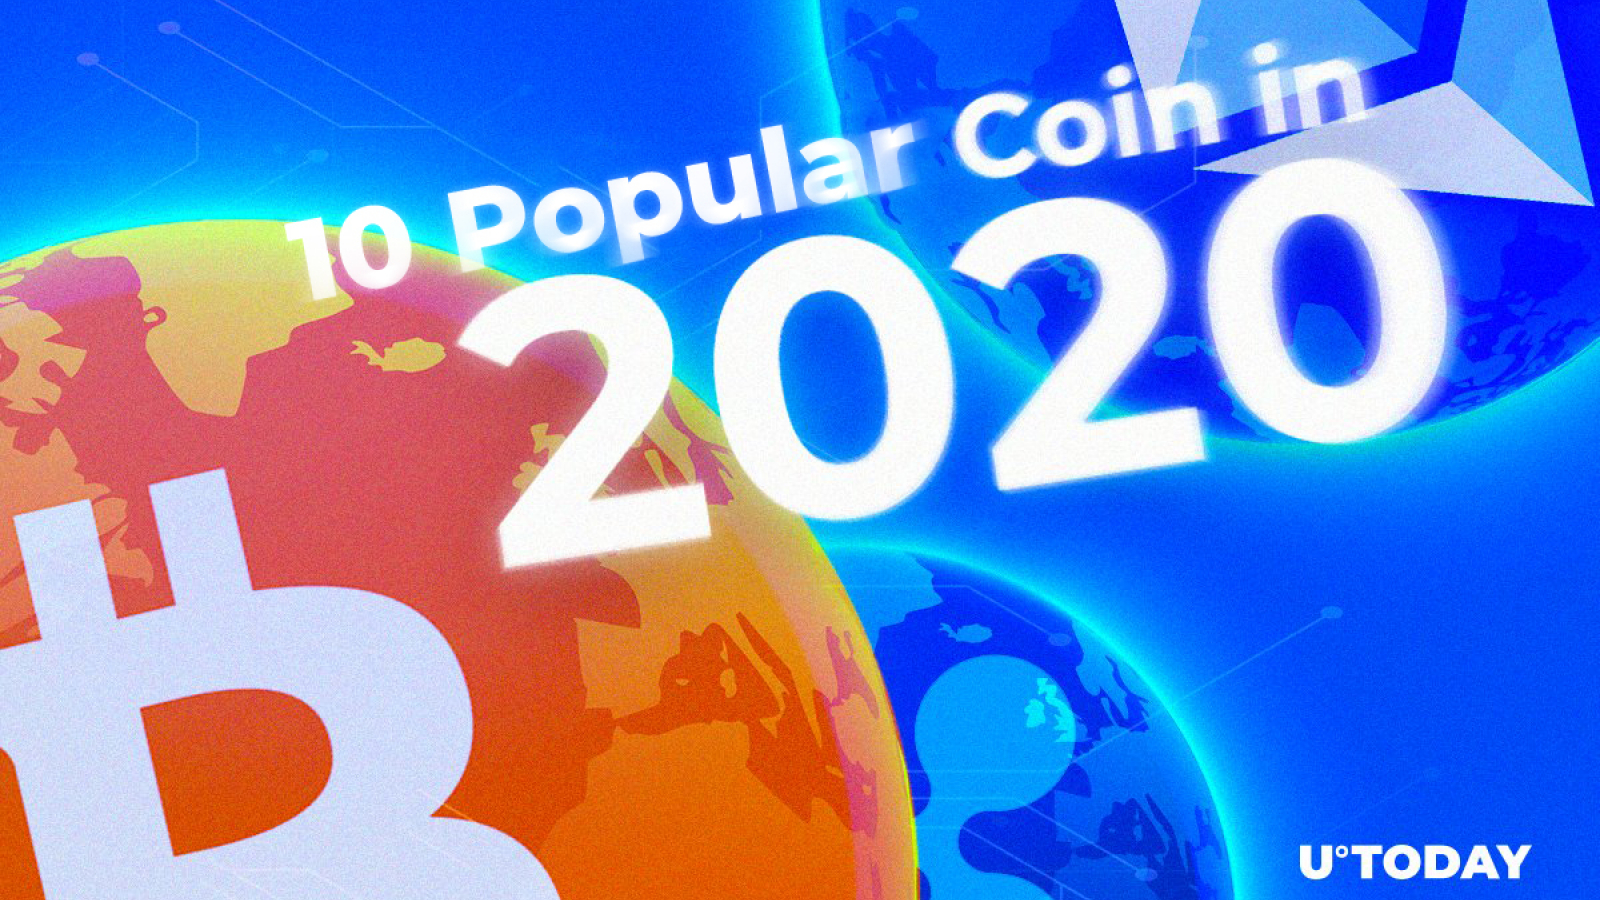 Best Coin To Mine 2020 10 Popular Coins in 2020 Forecast: How Much Might the Big